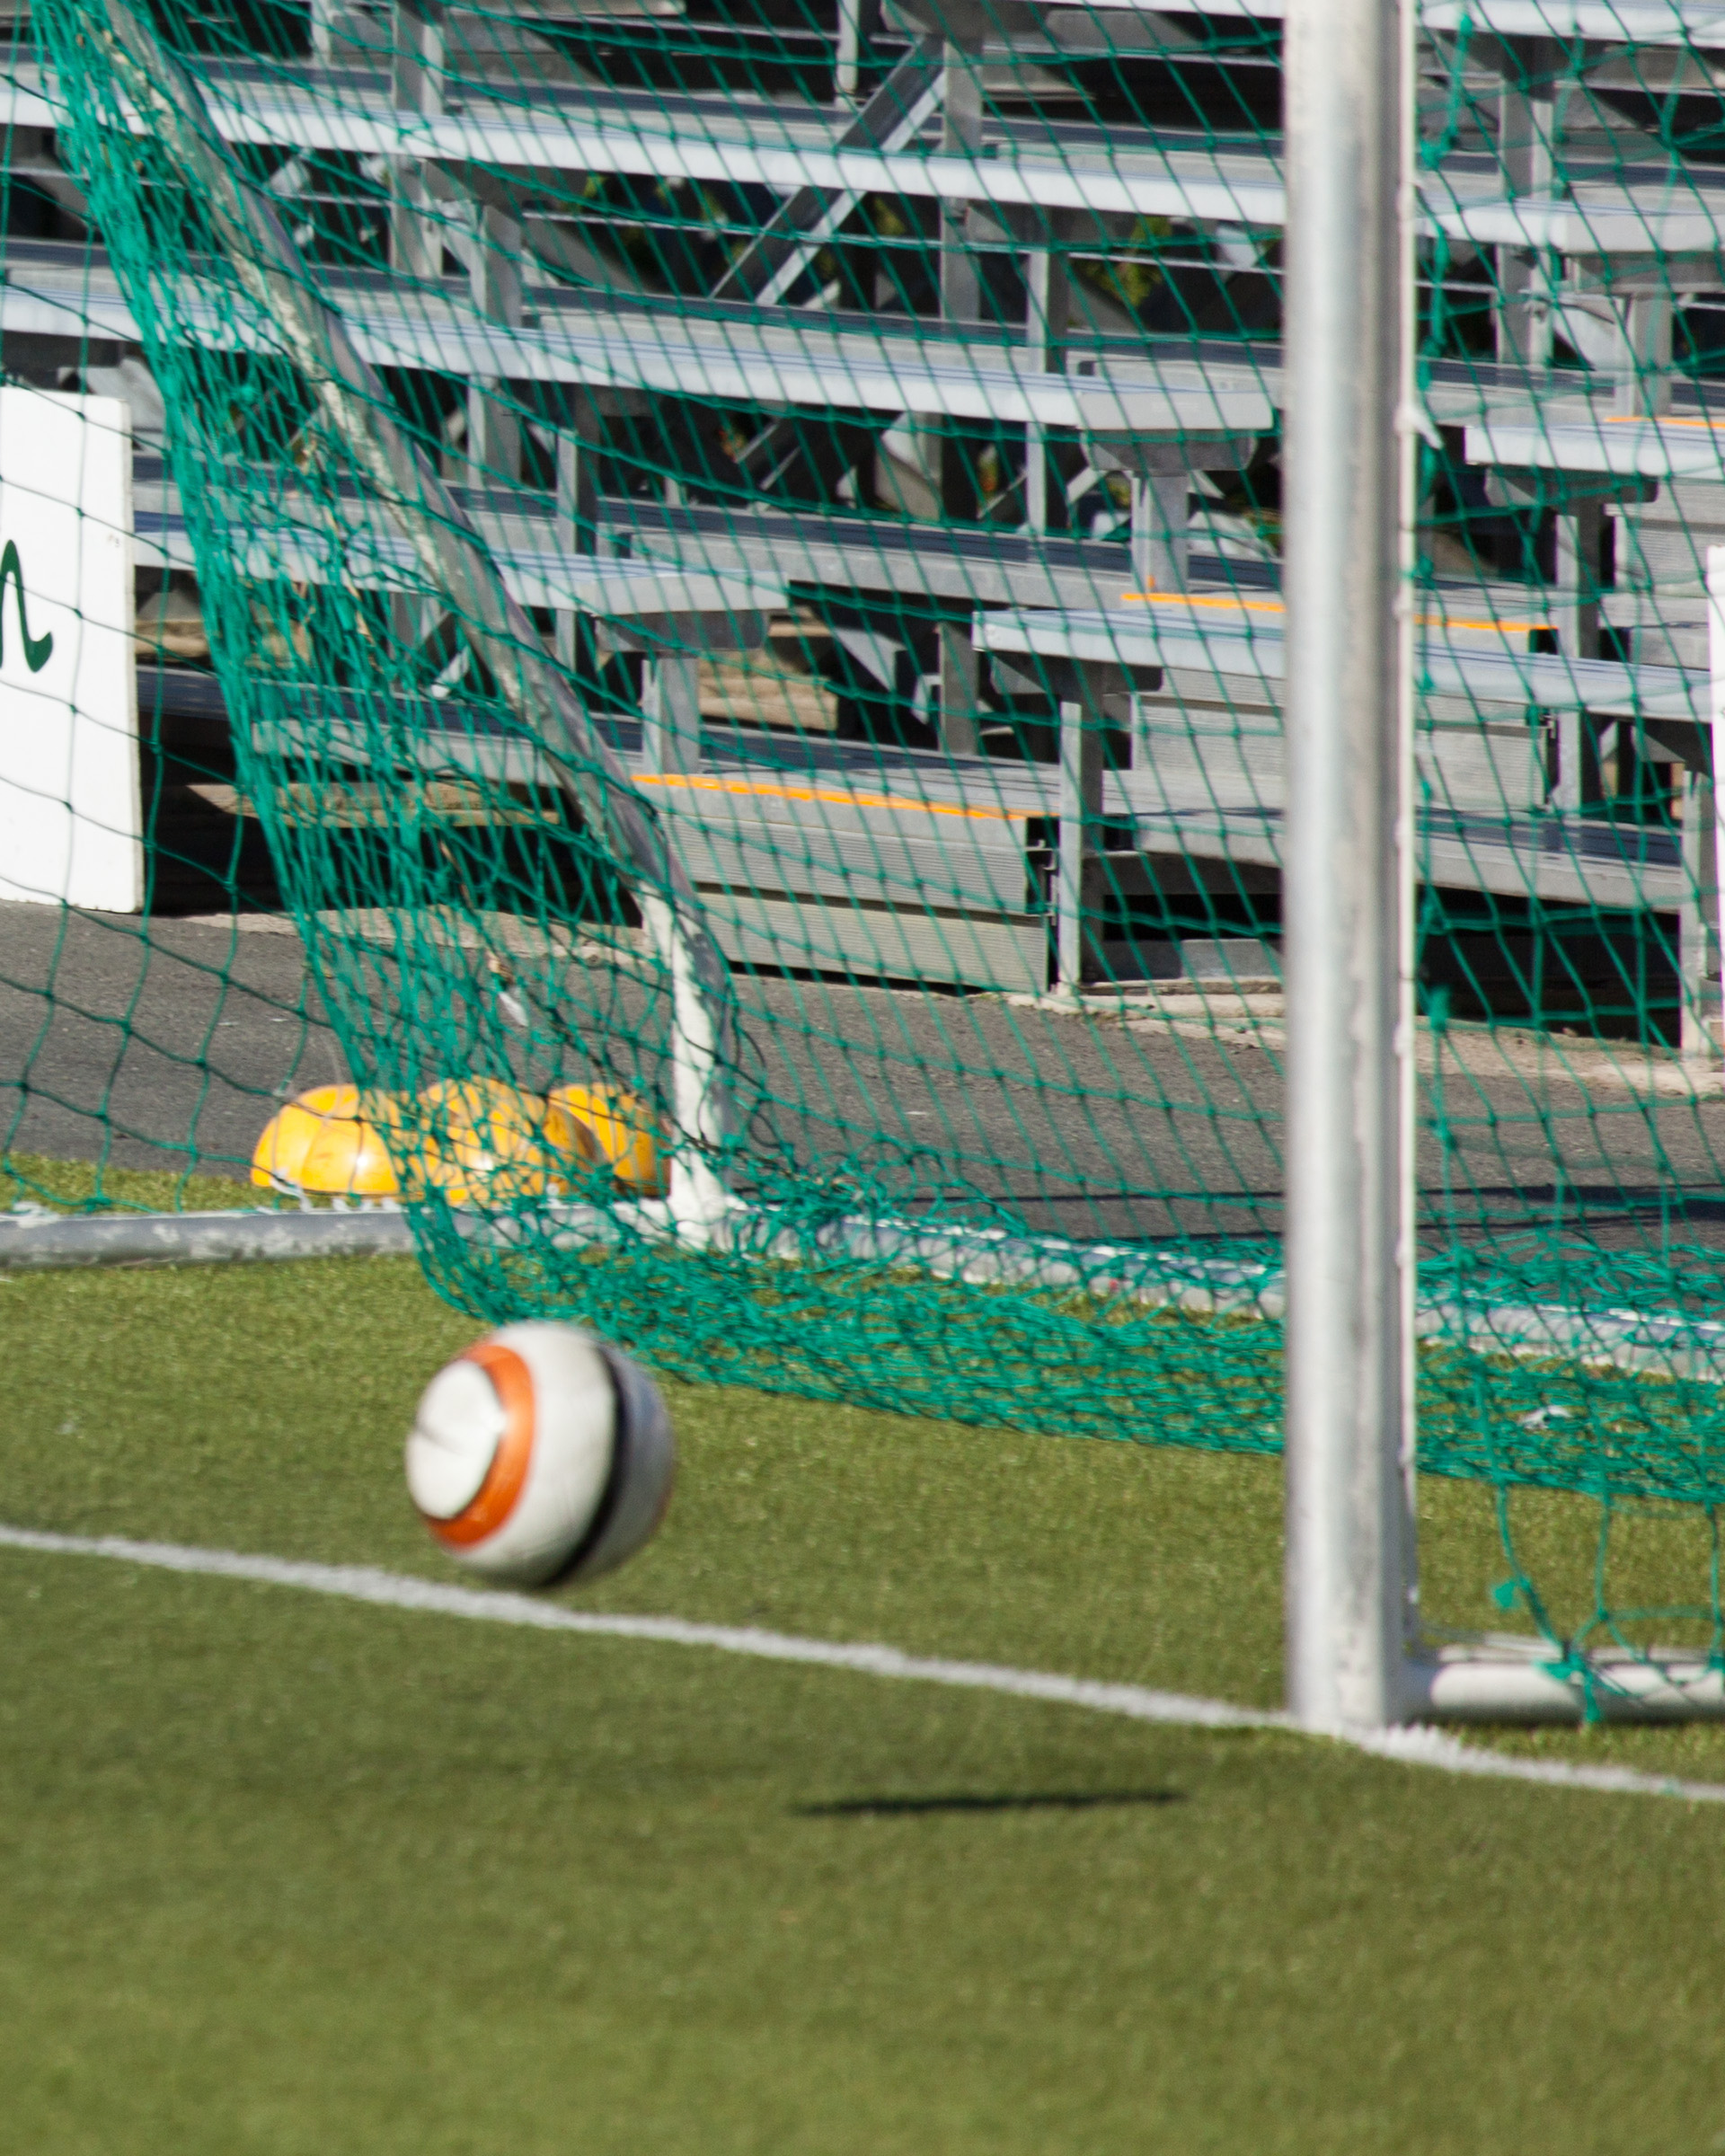 Soccer, Activity, Season, Net, Netting, HQ Photo